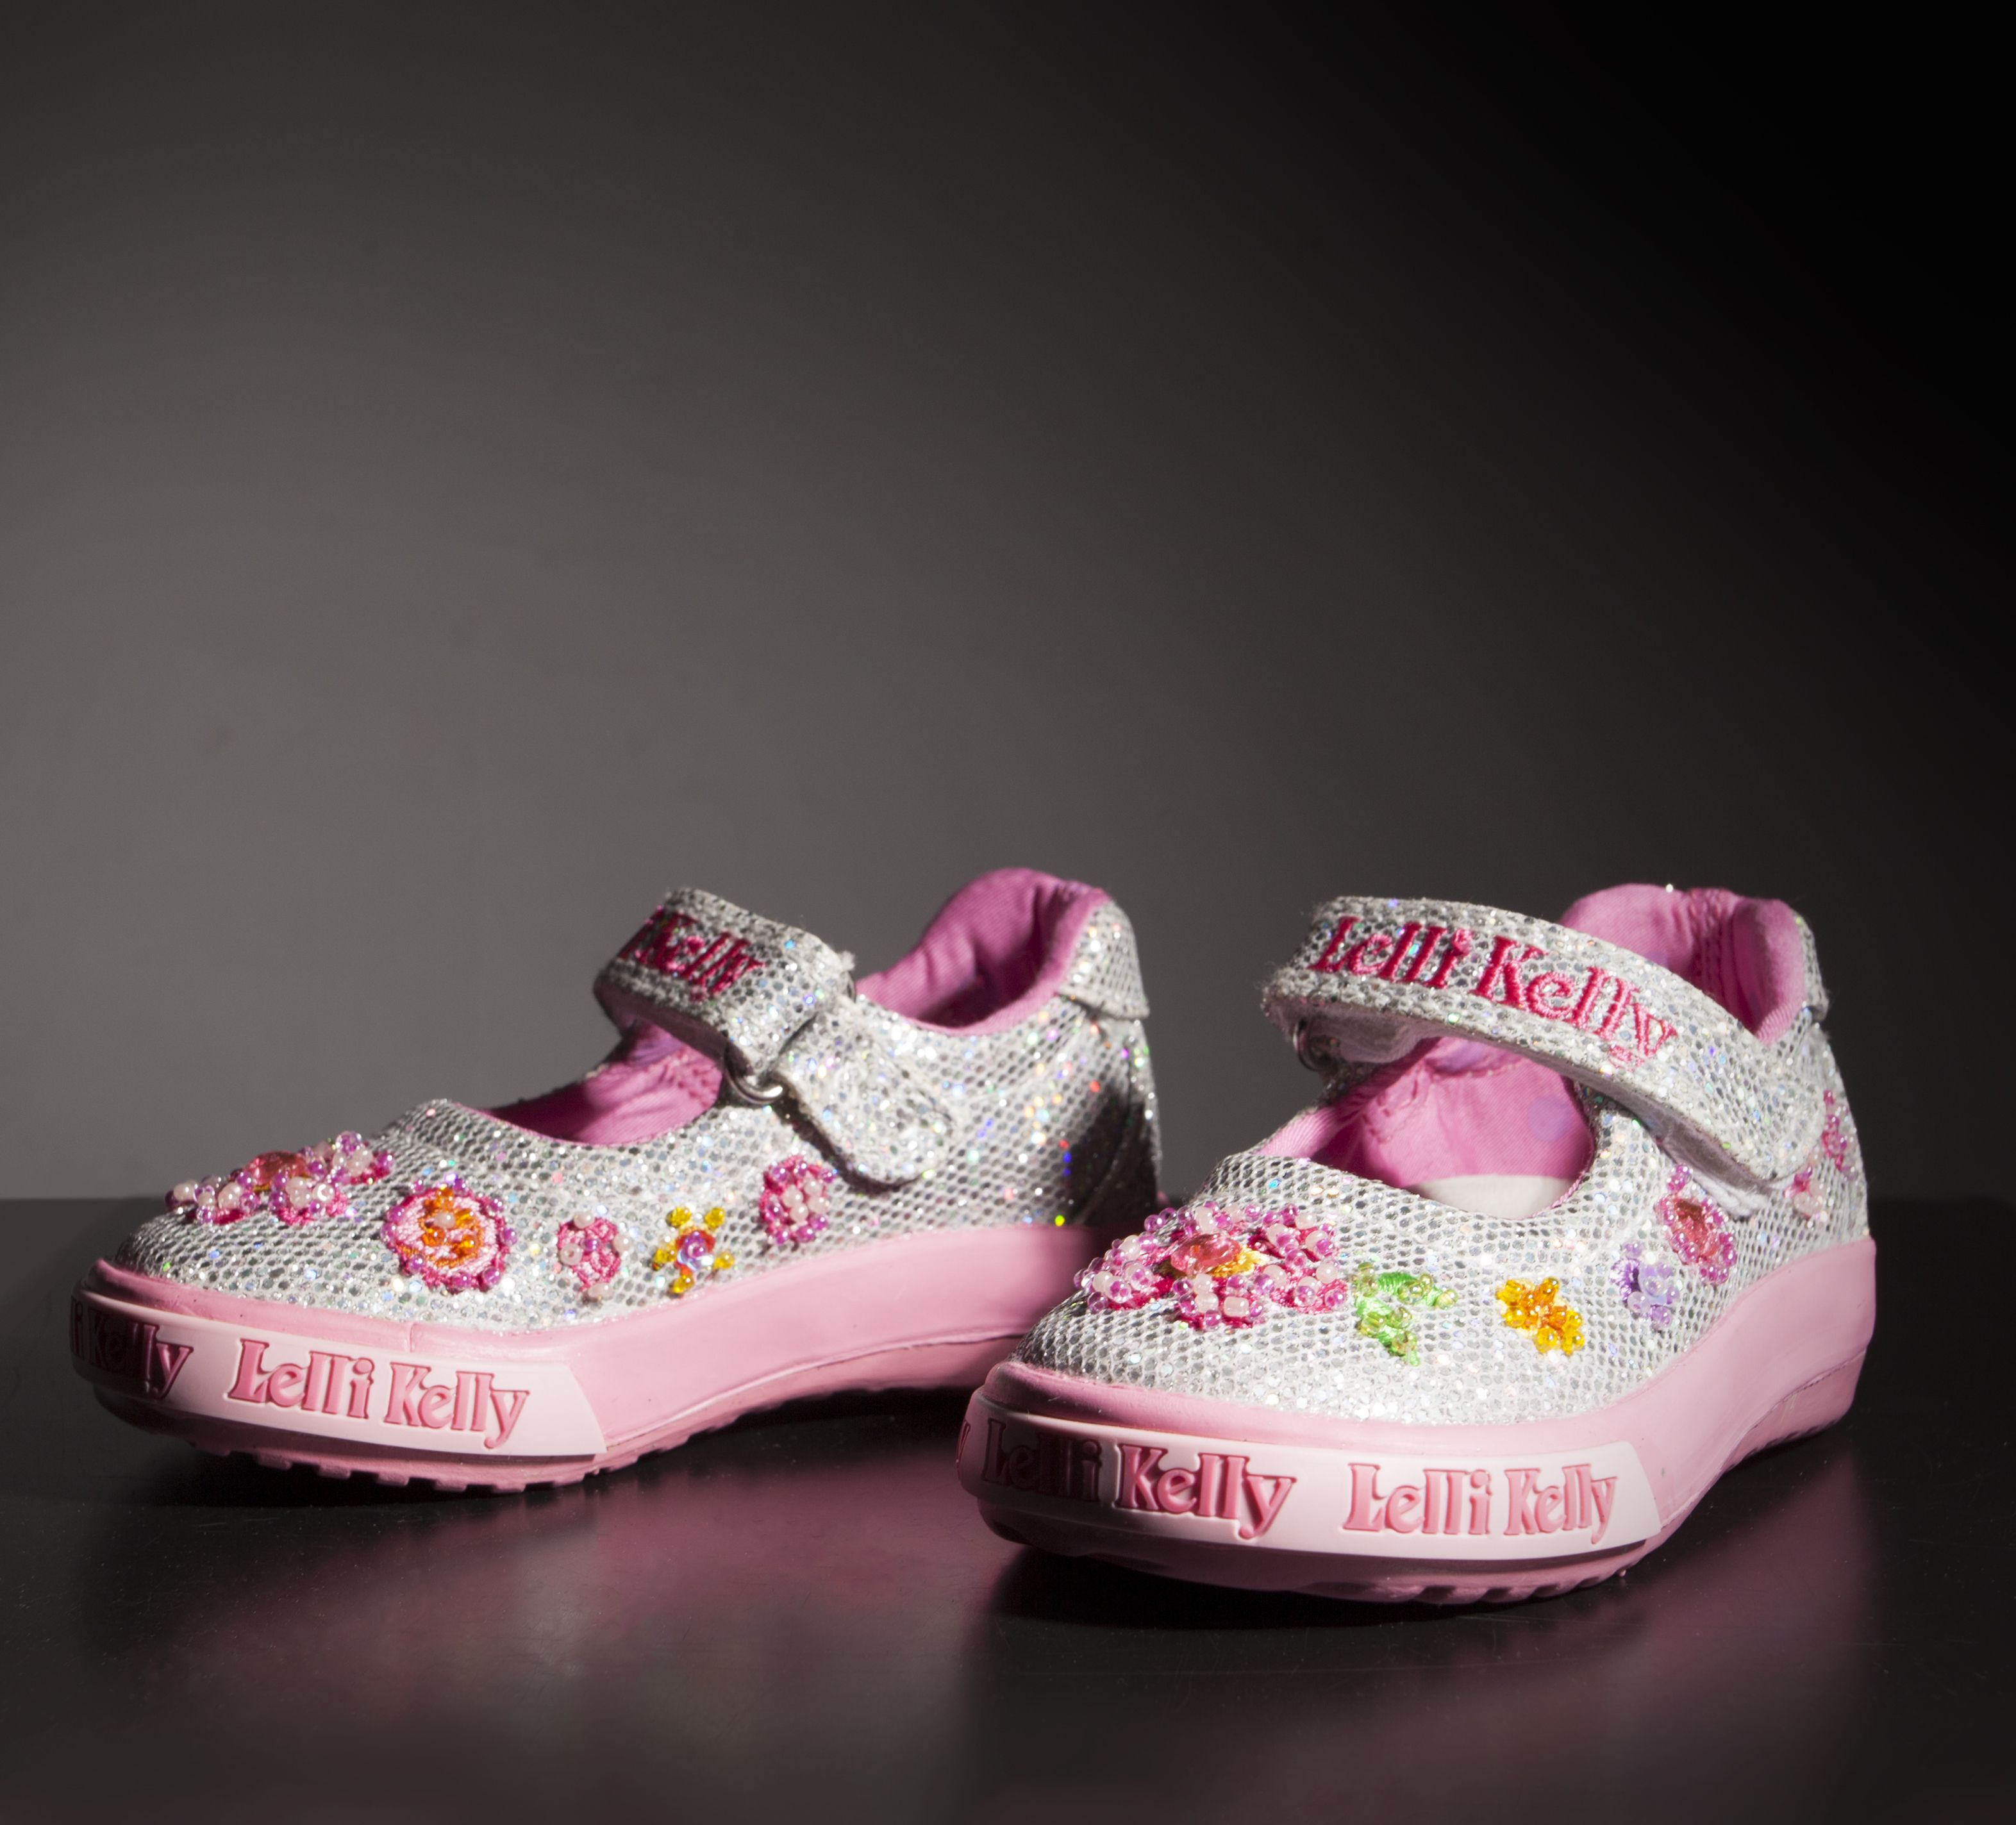 4171f8616ca47 Lelli Kelly Florence Glitter Dolly shoes | Baby & Child | Shoes ...